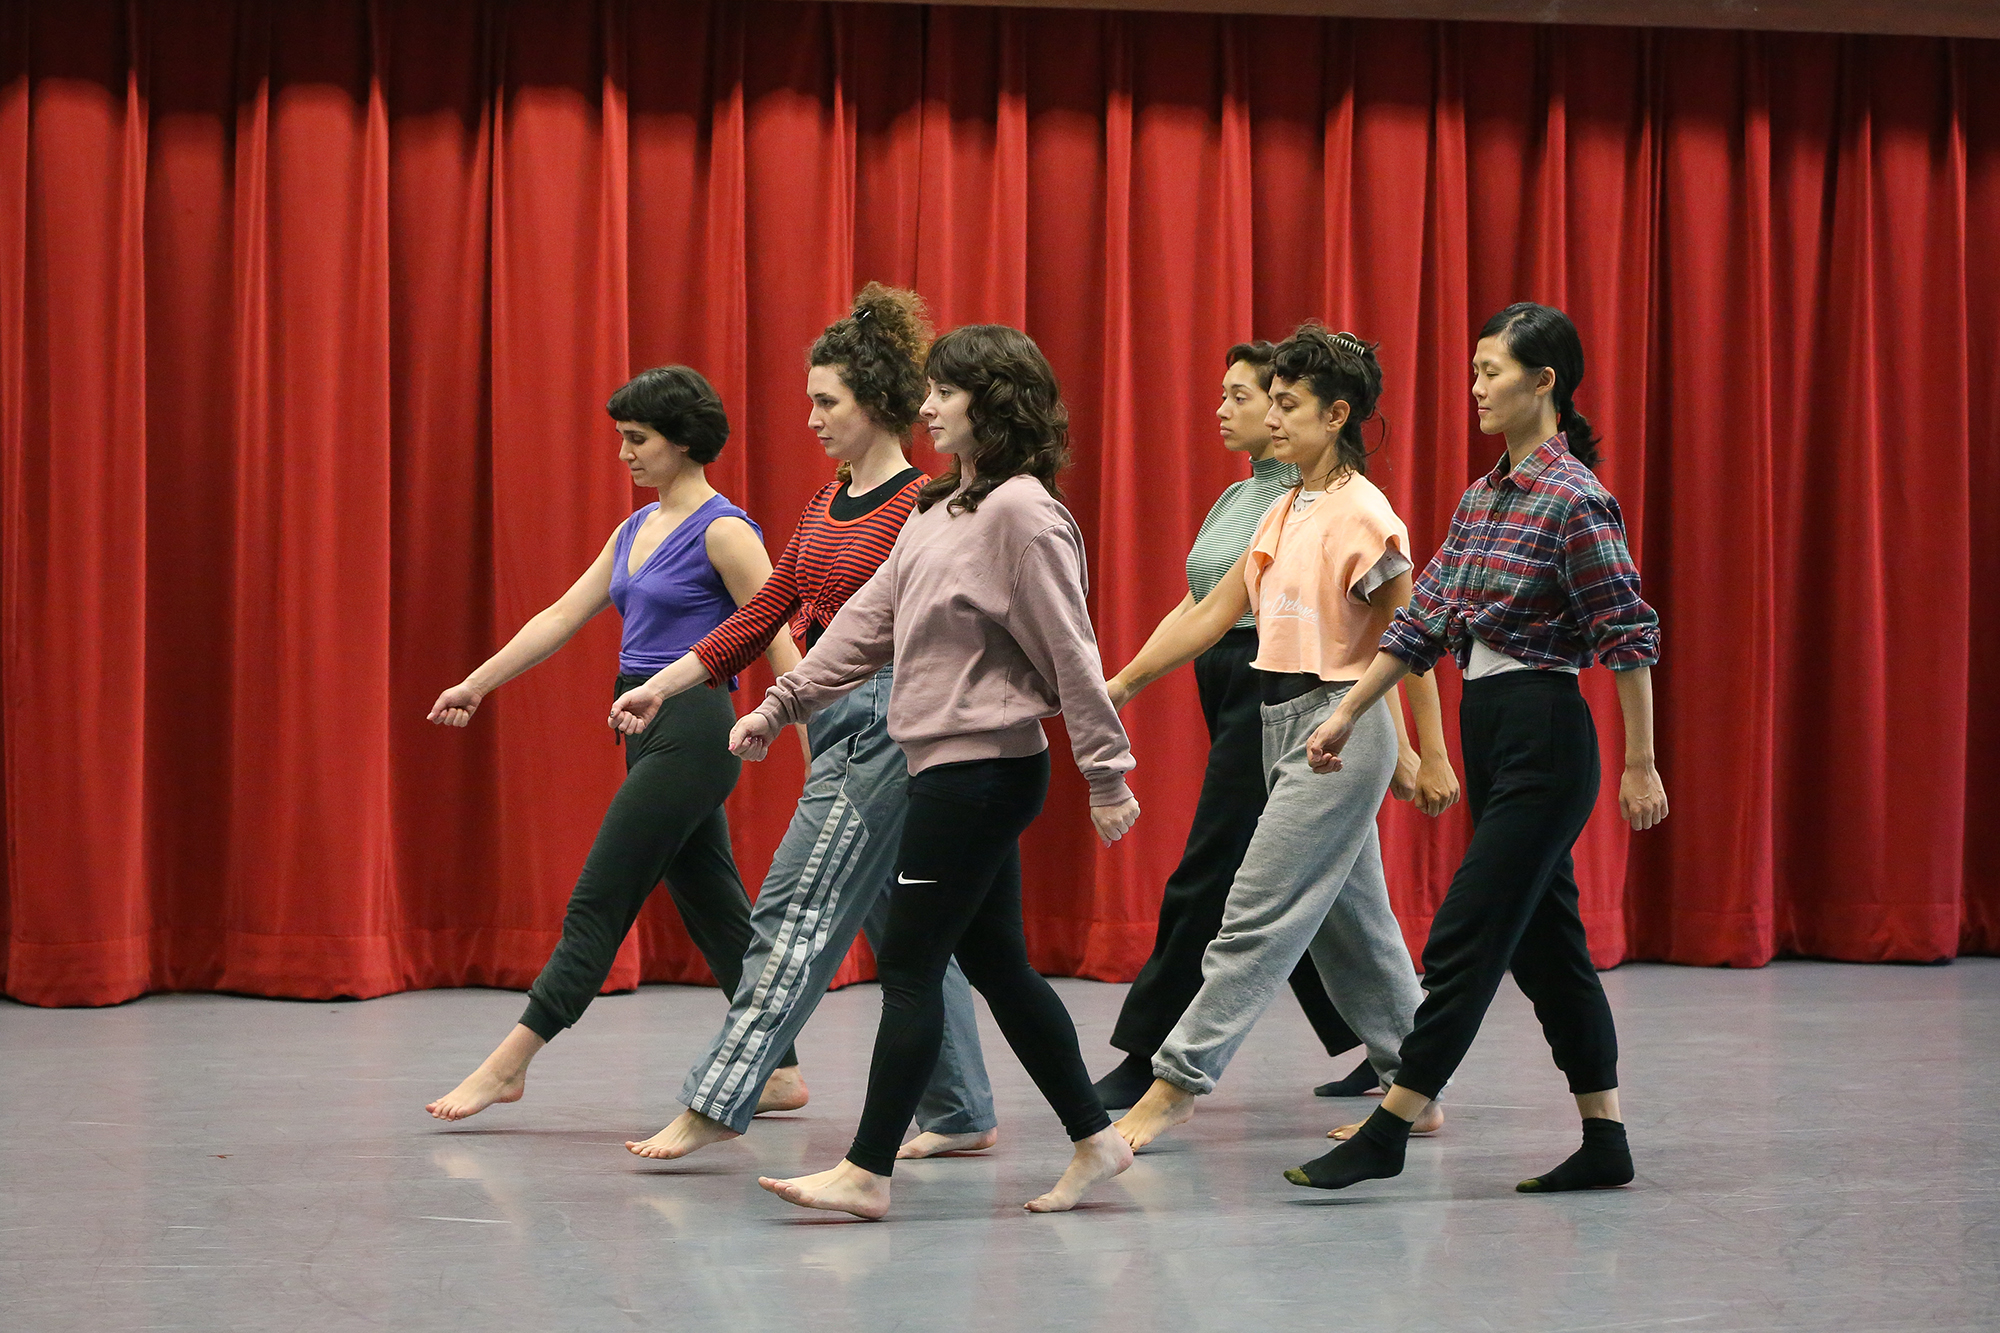 Six casually dressed people walk in unison in a two-line formation in front of a red curtain on a grey floor.